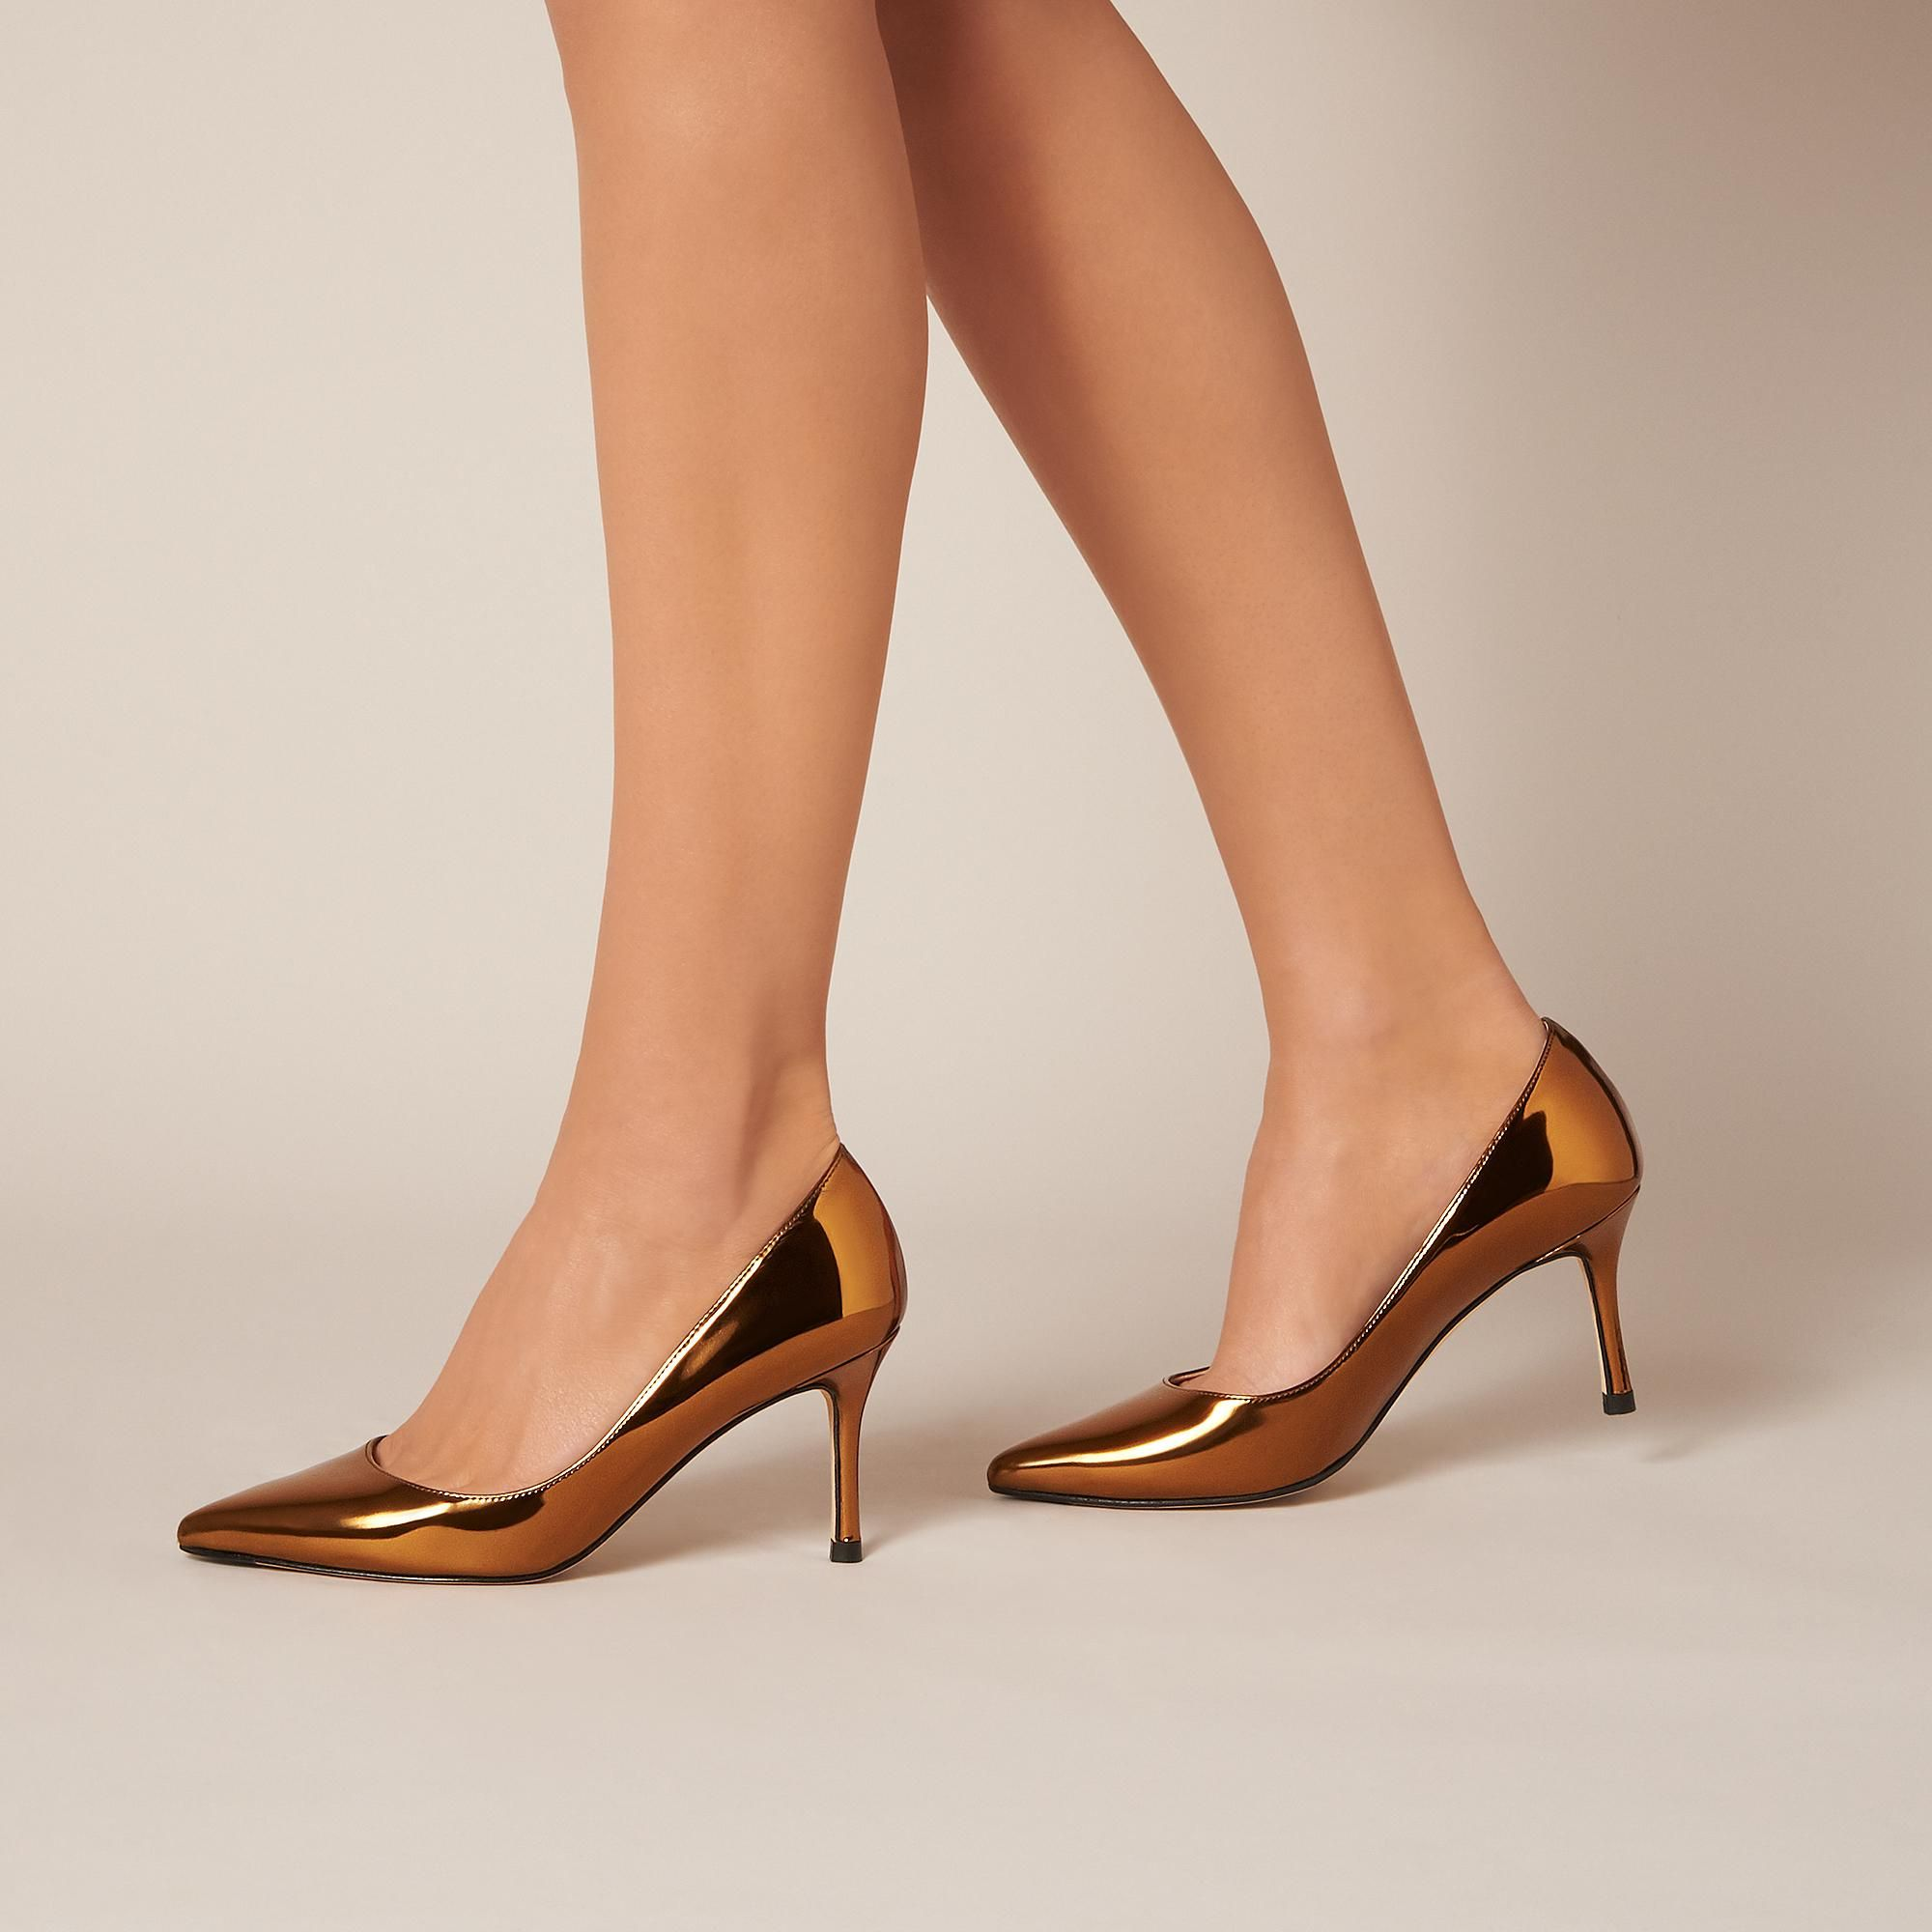 7db04997ddad Bianca Gold Closed Courts | Shoes | L.K.Bennett | Kitten heels ...